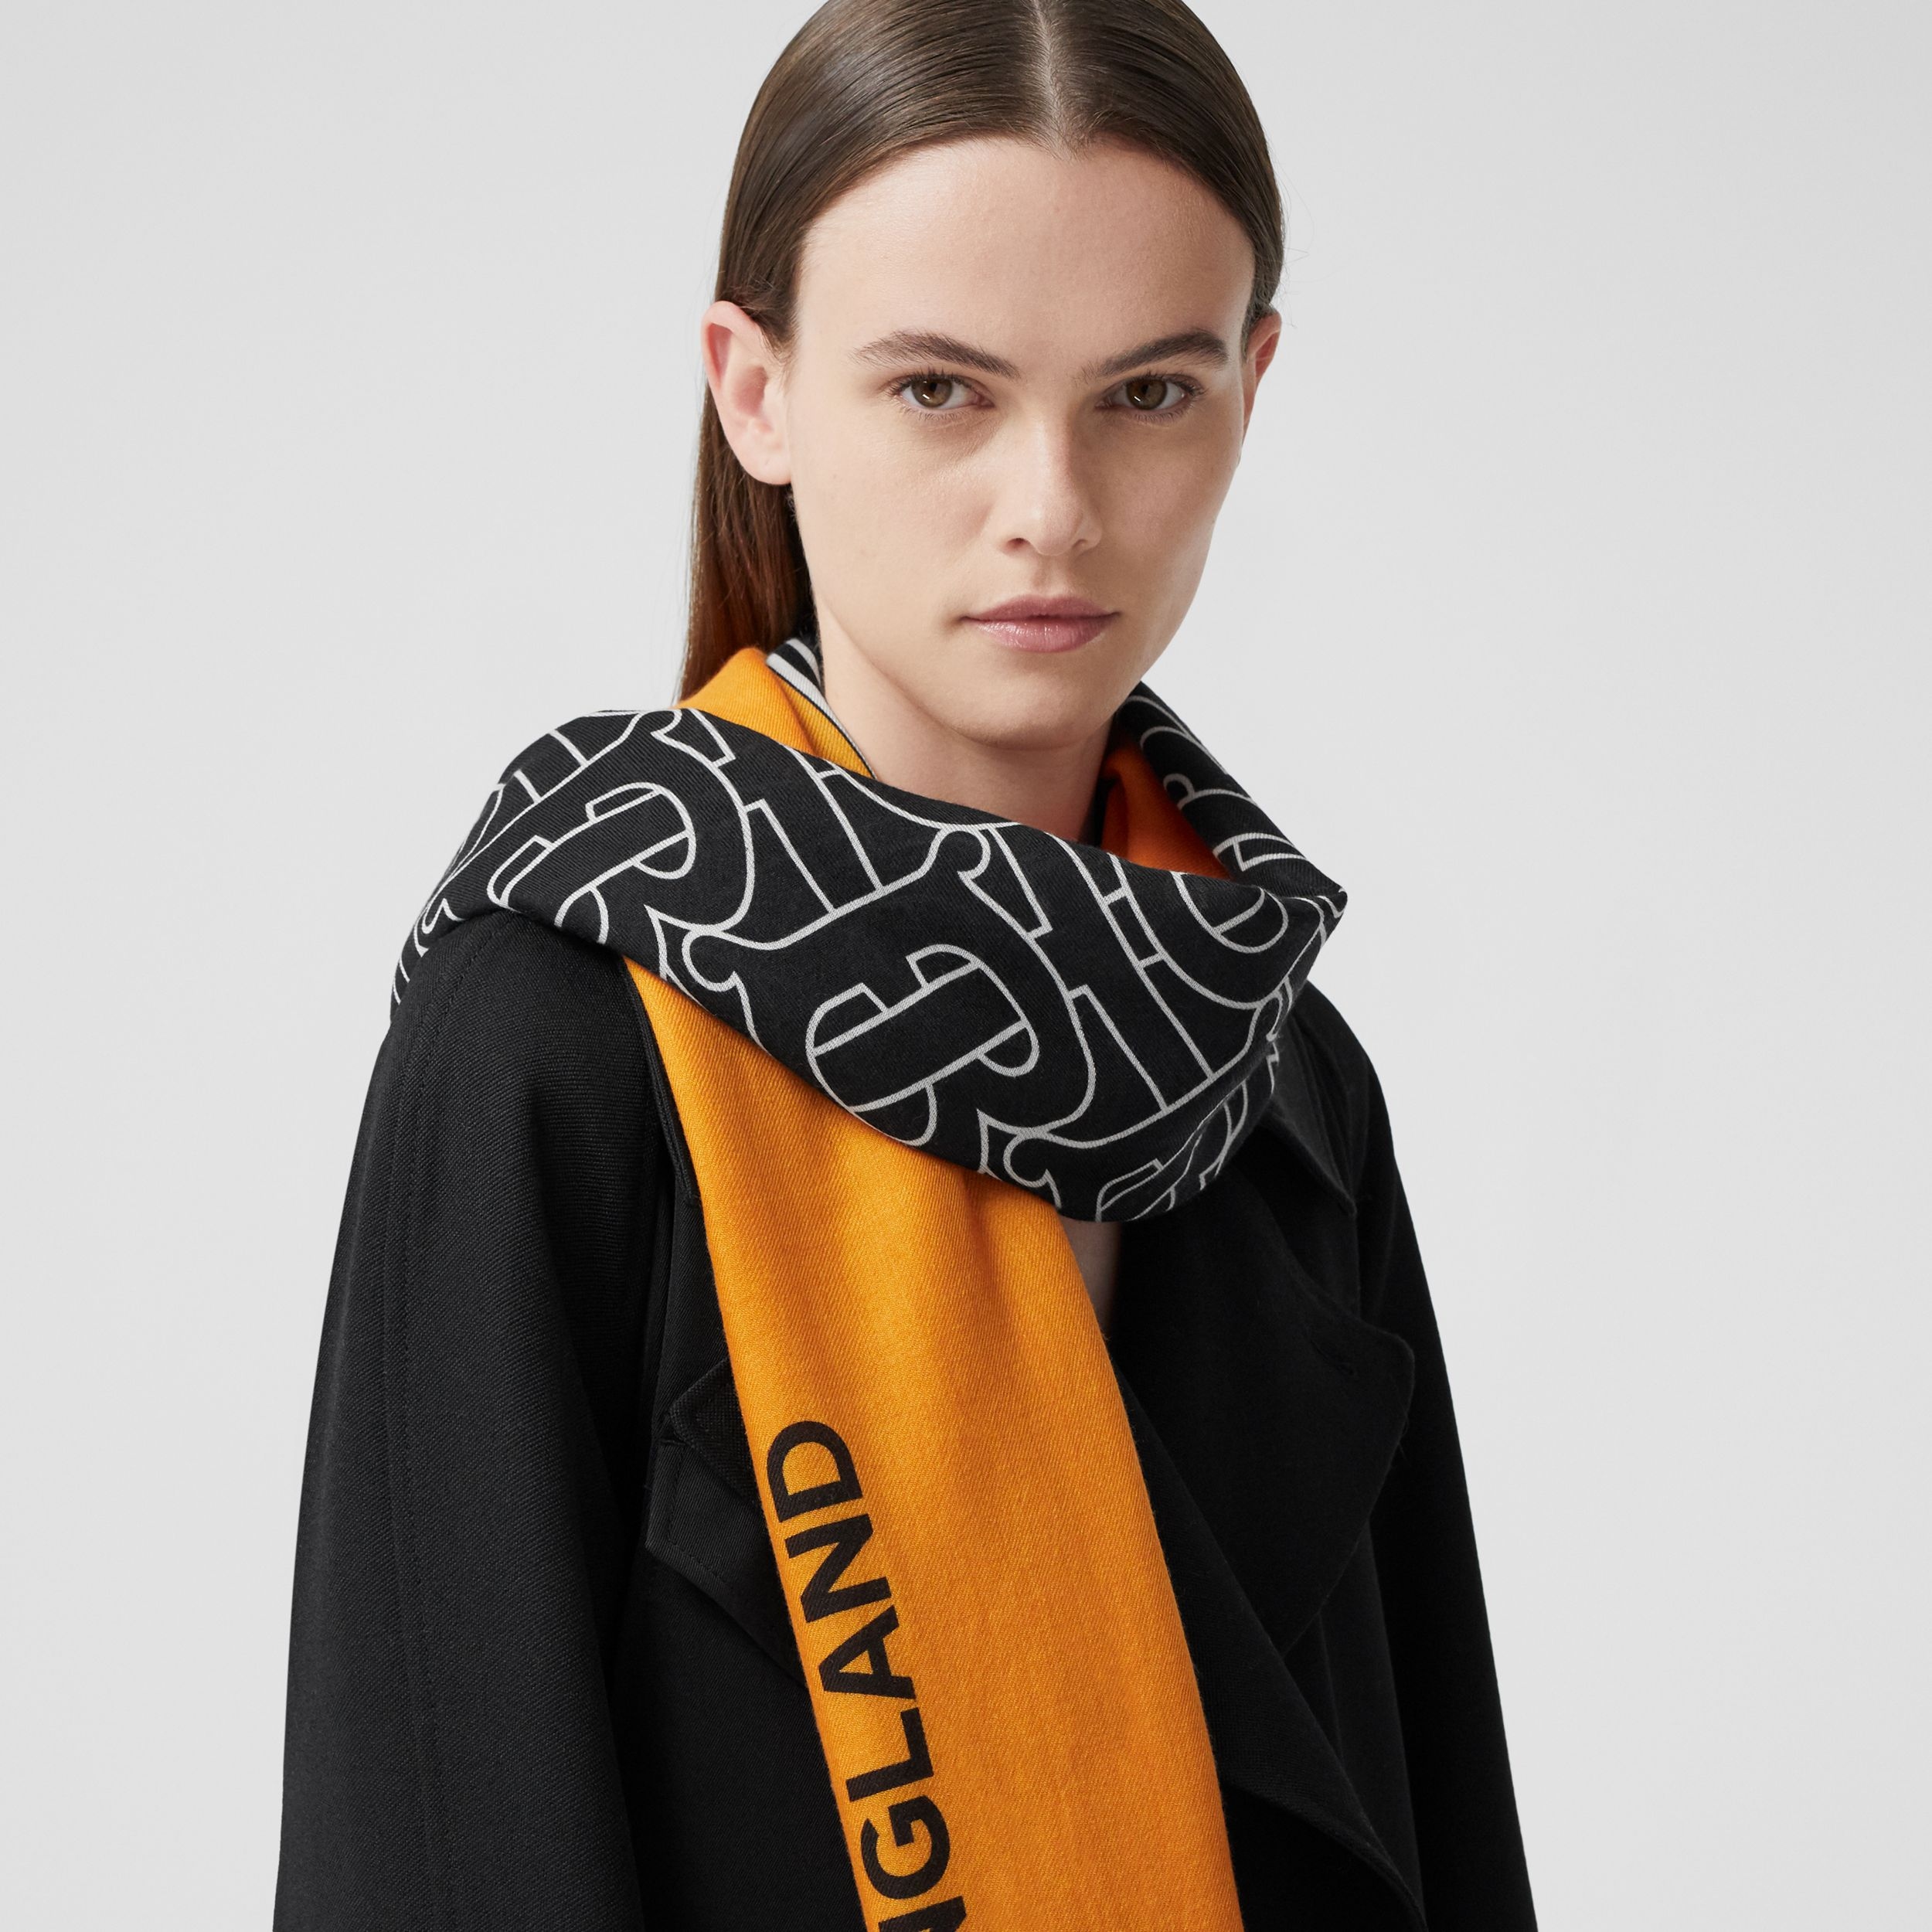 Monogram Print Striped Lightweight Cashmere Scarf in Citrus Yellow | Burberry - 3